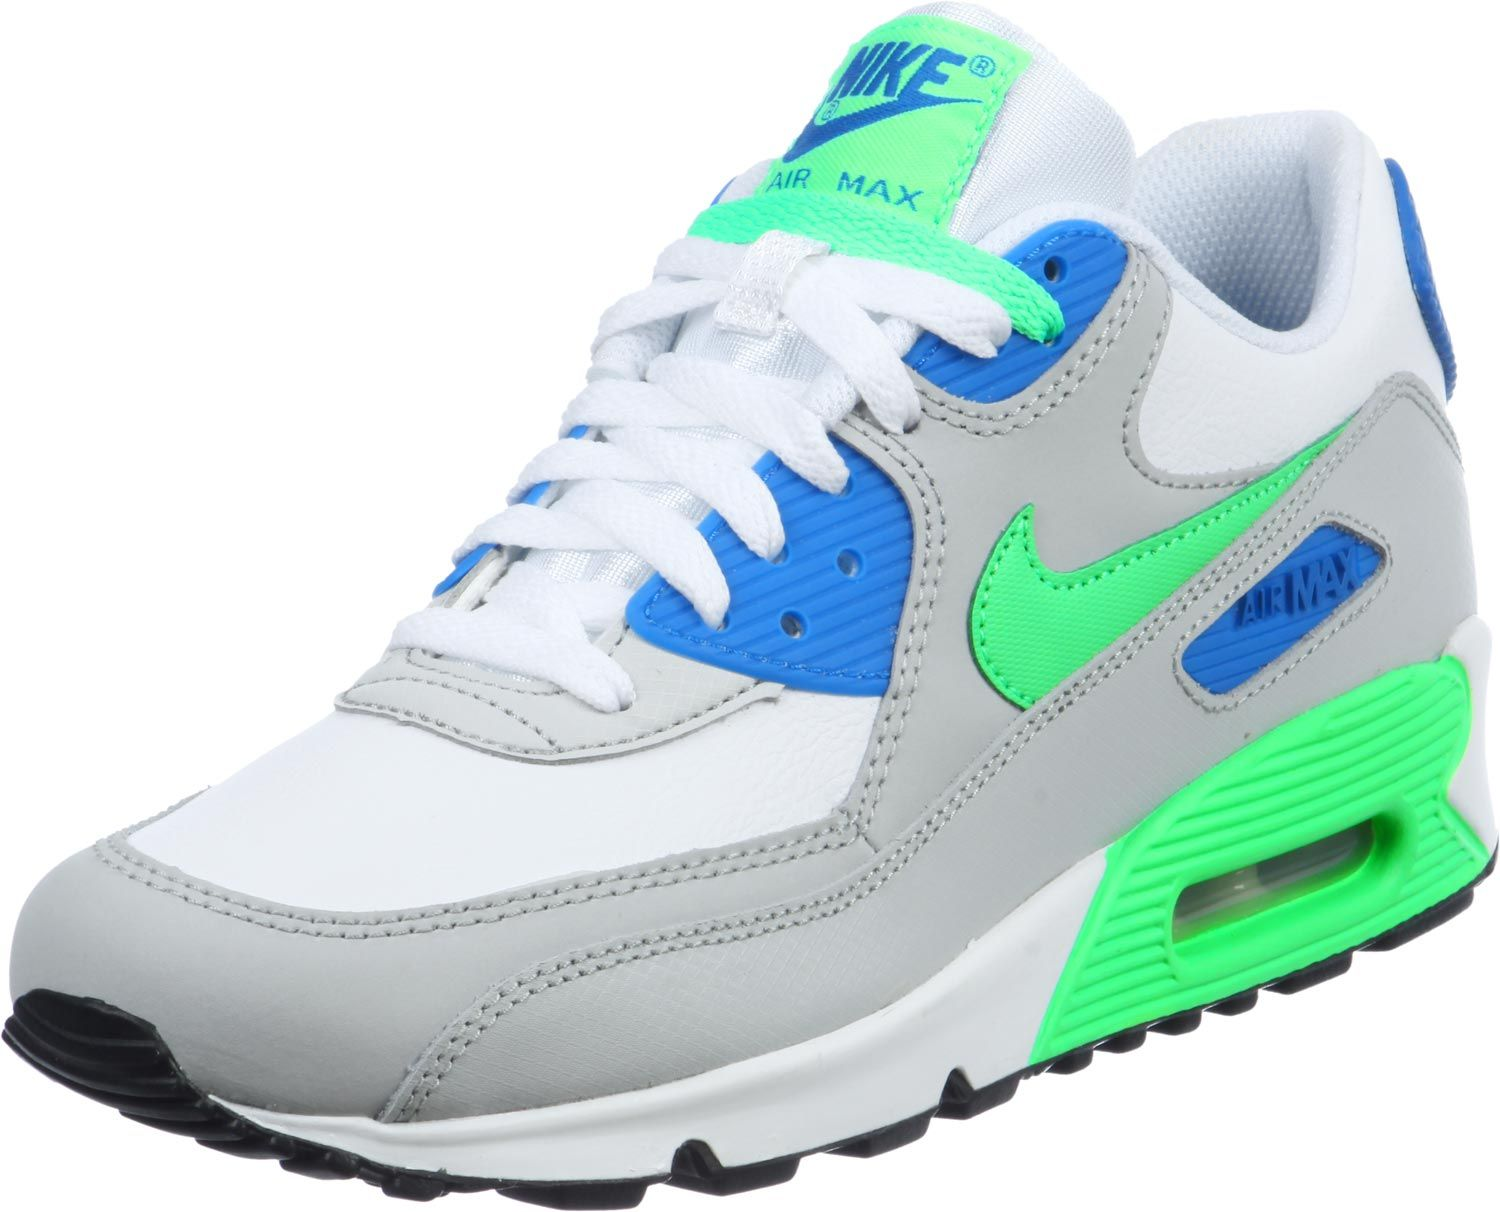 nike air max 90 youth schuhe white green blue 1550 zoom 1500 1212 haben will. Black Bedroom Furniture Sets. Home Design Ideas